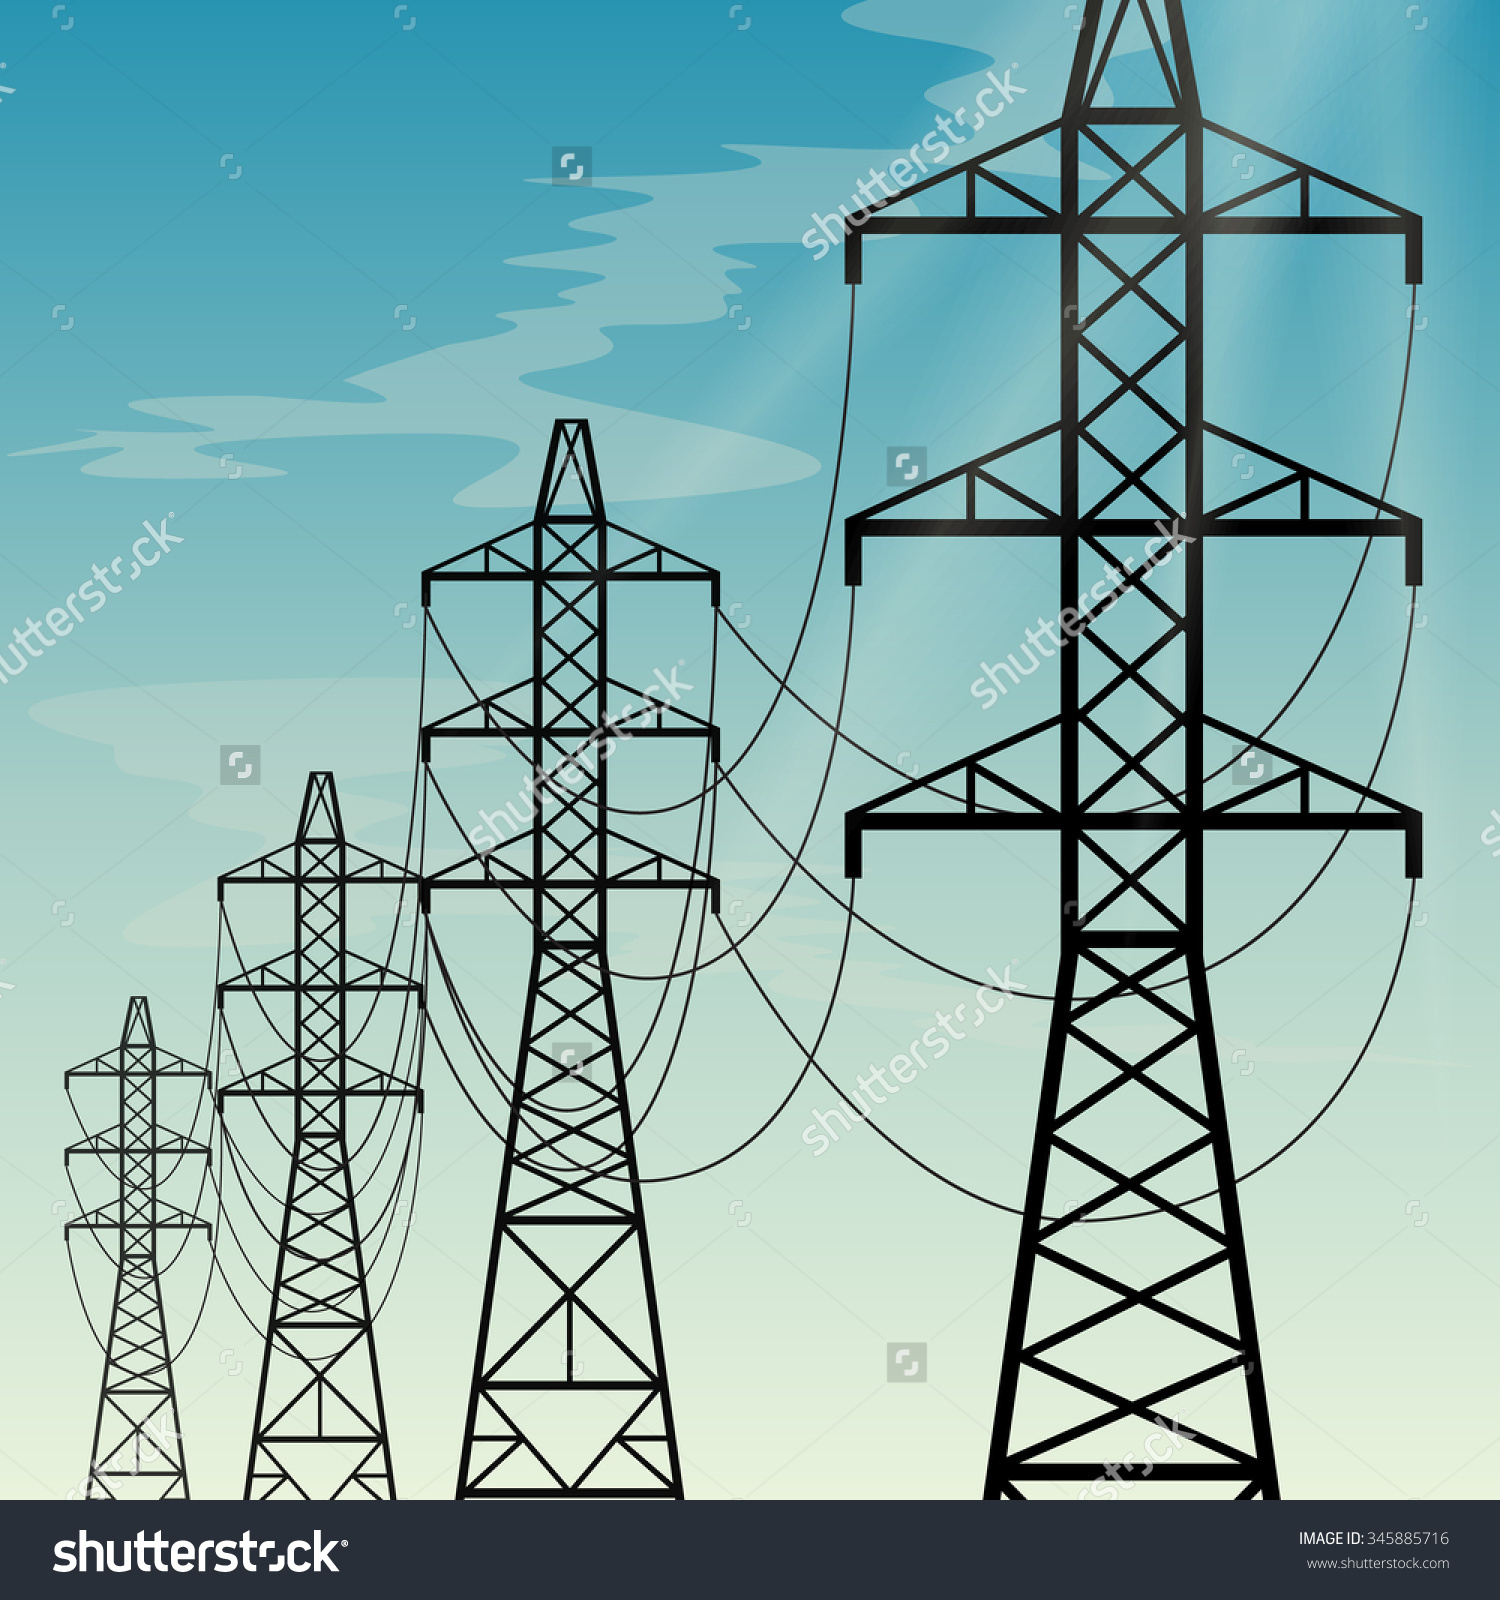 High Voltage Overhead Power Lines Stock Vector 345885716.